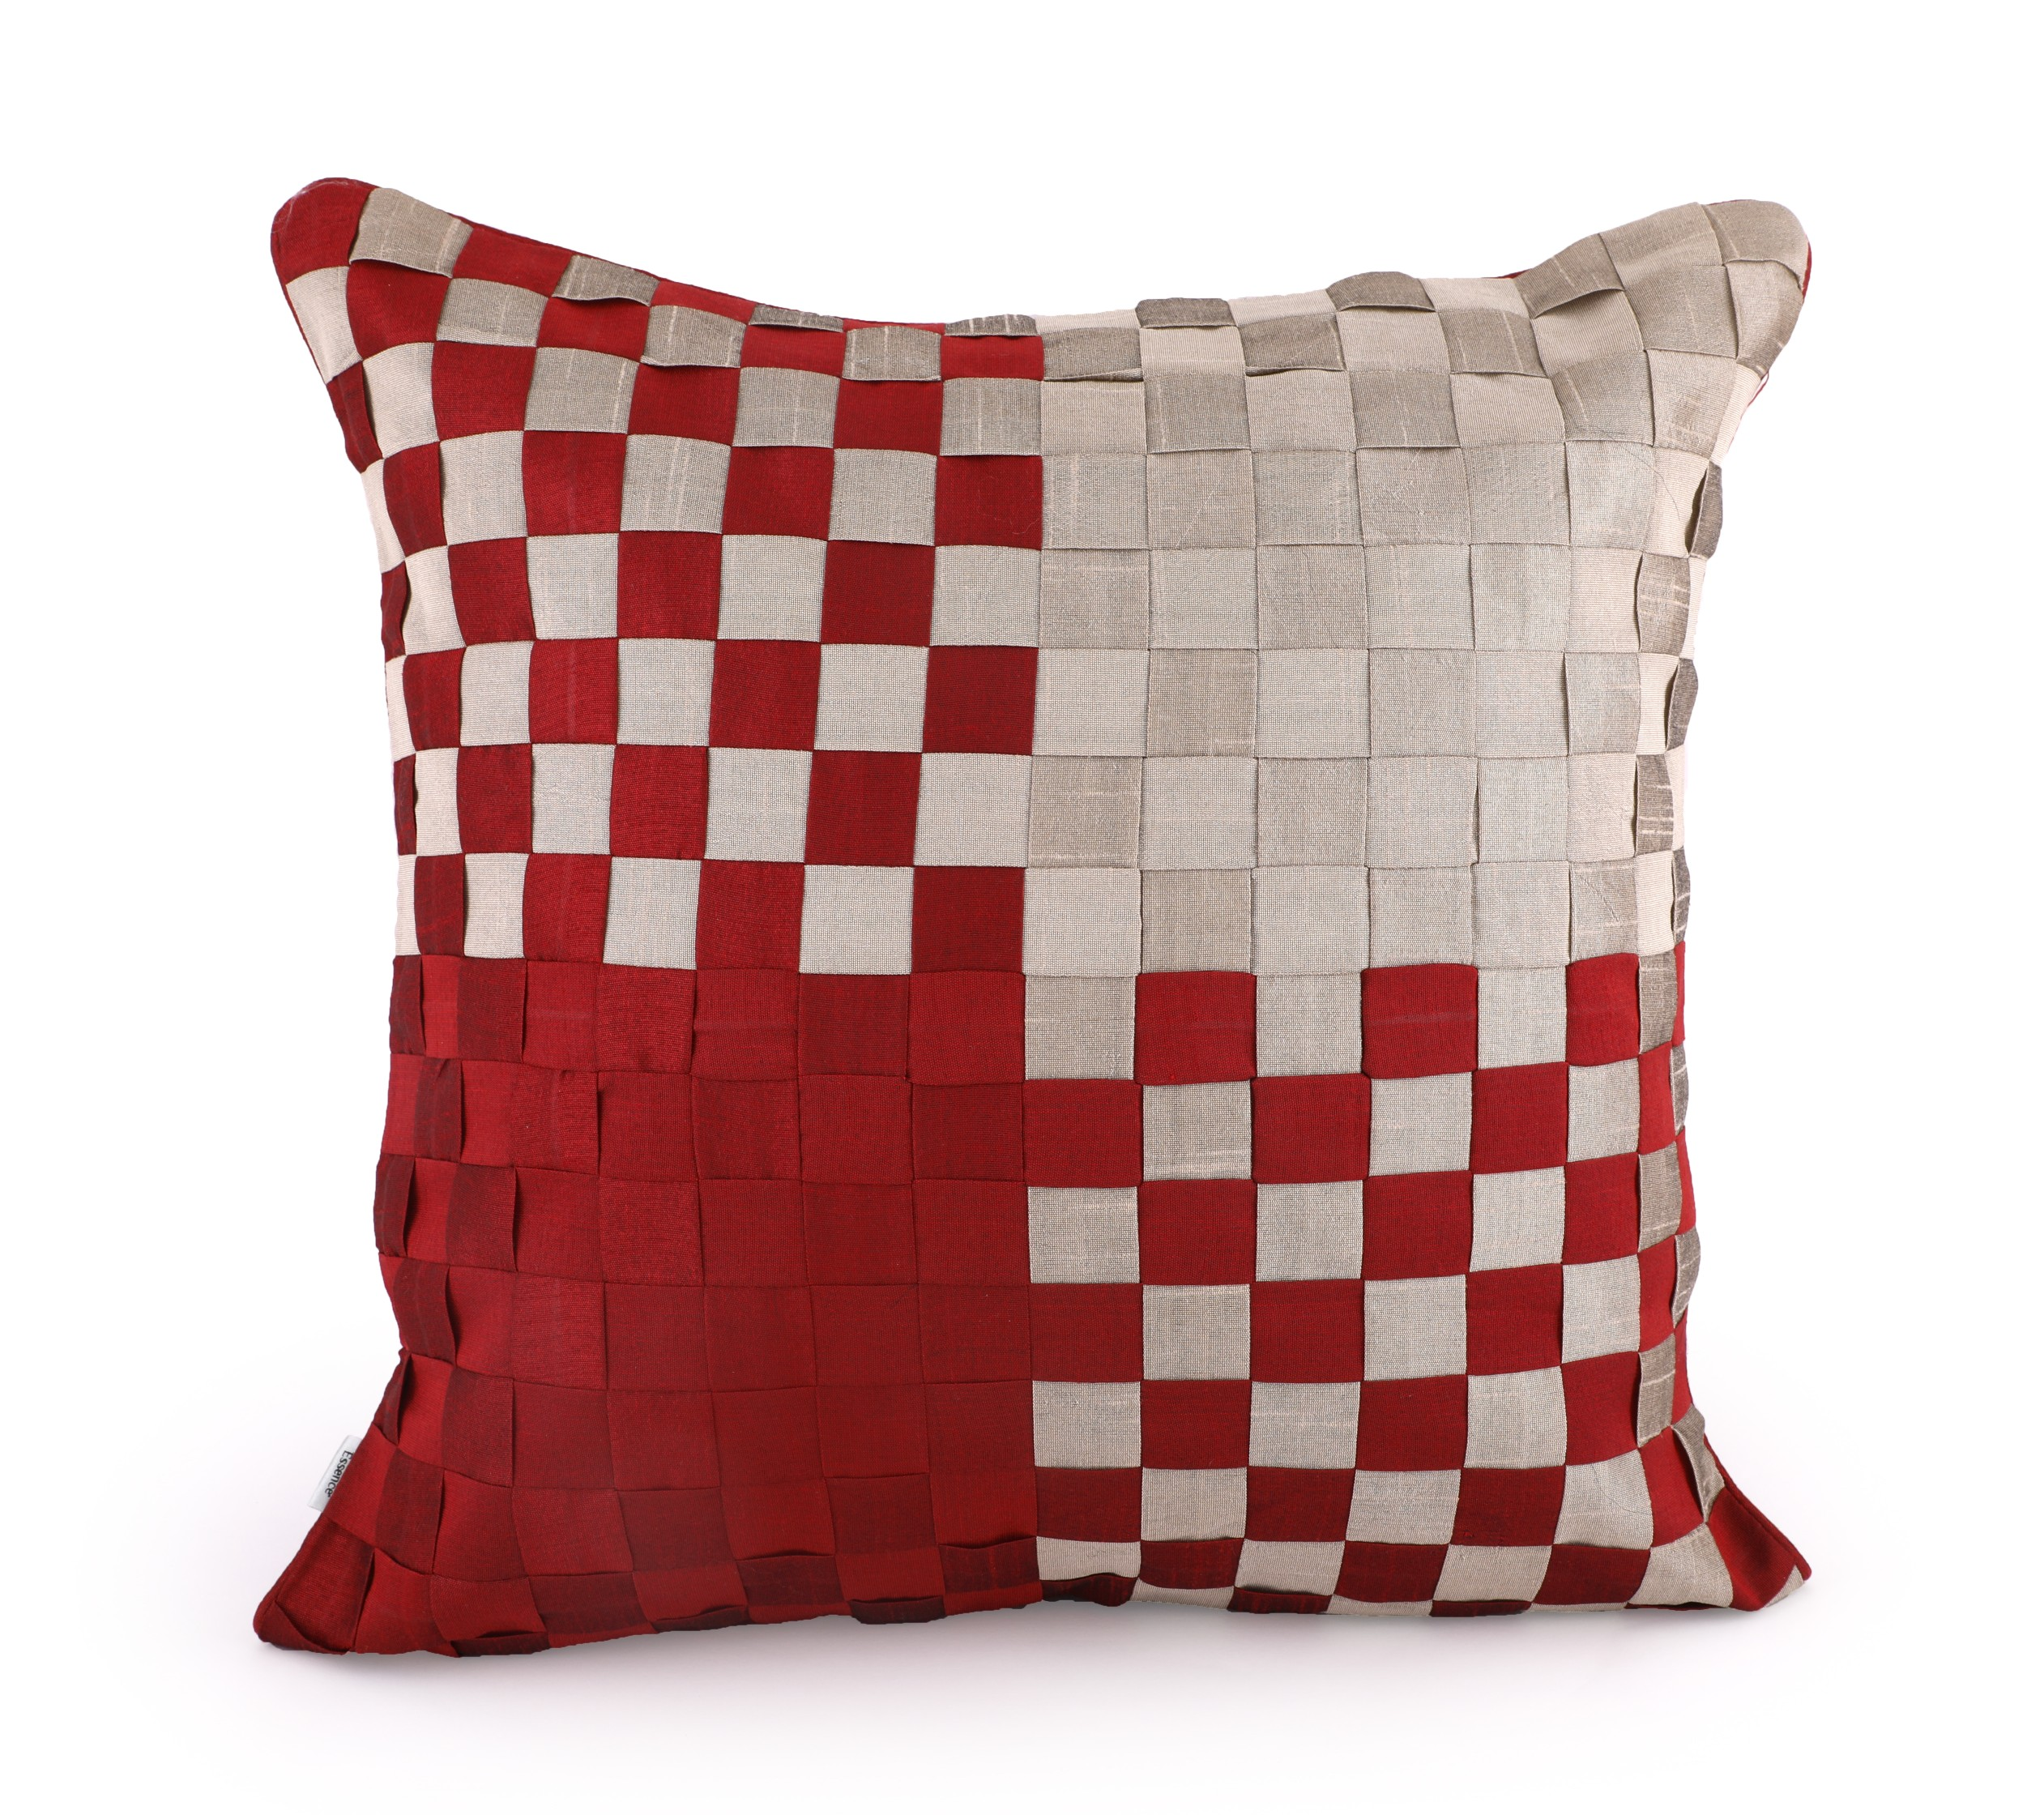 Basket Maroon Cushion Cover Cotton Cushion Covers in Maroon Colour by HomeTown